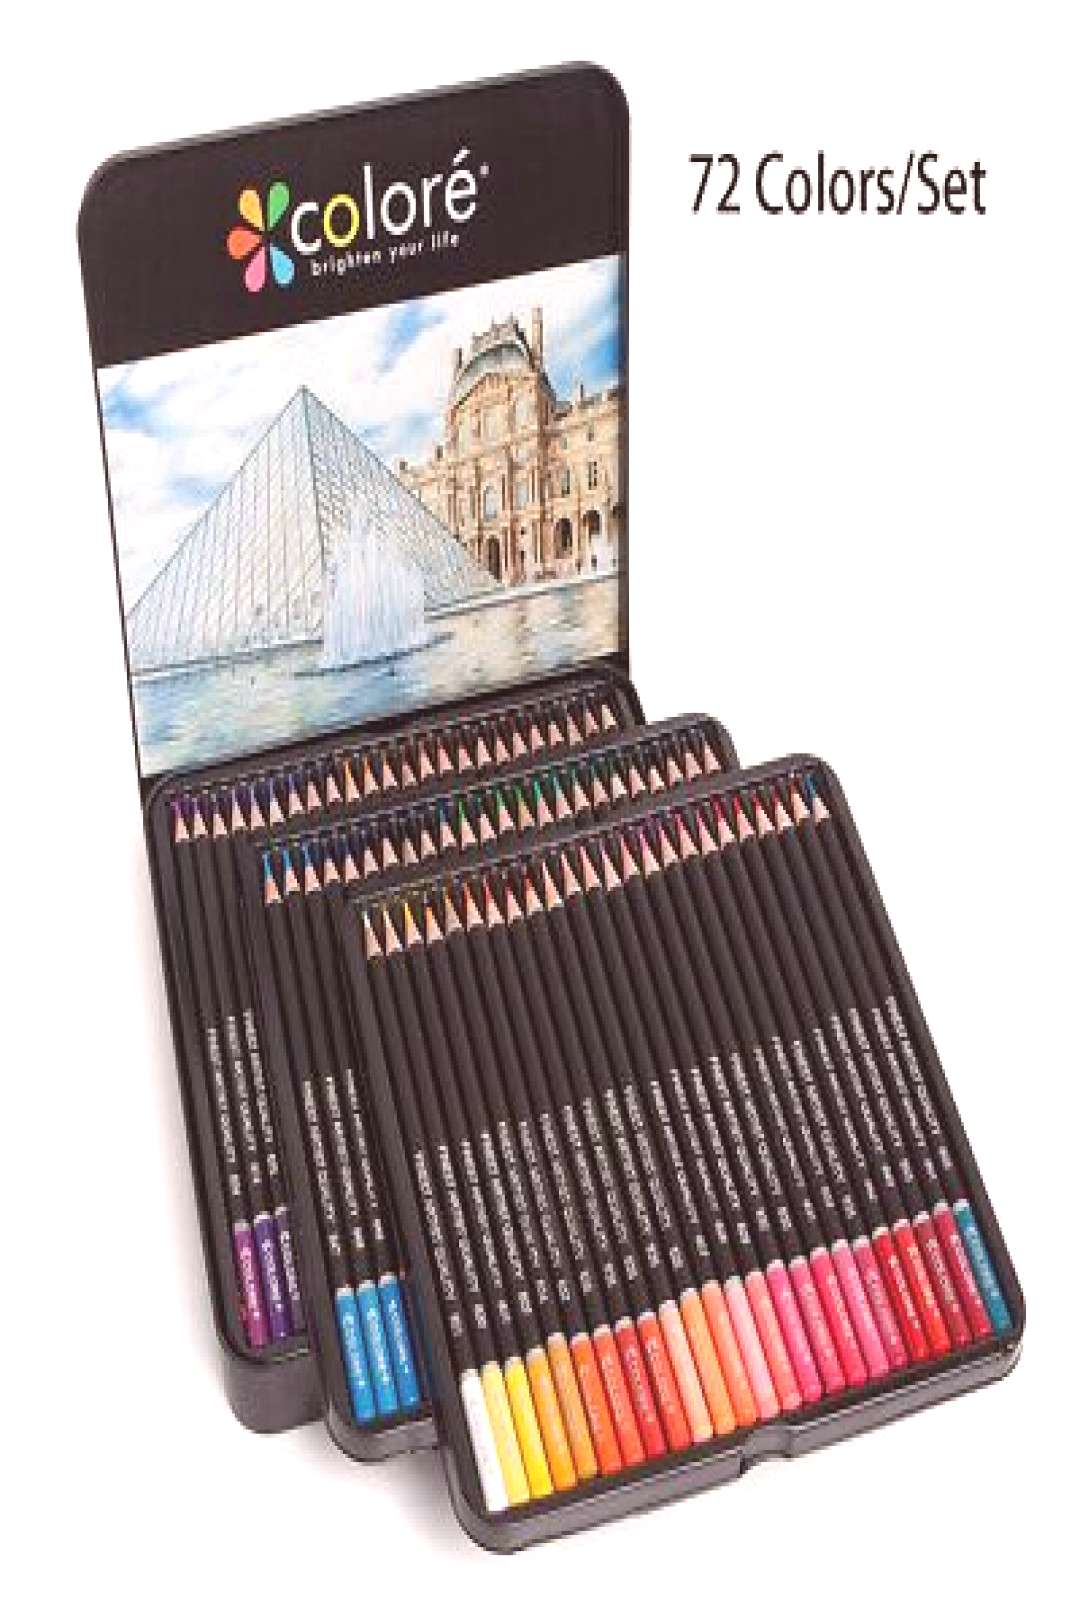 72 Colors Colored Drawing Pens Coloring Pencils Art Supply Drawing Office Crafts